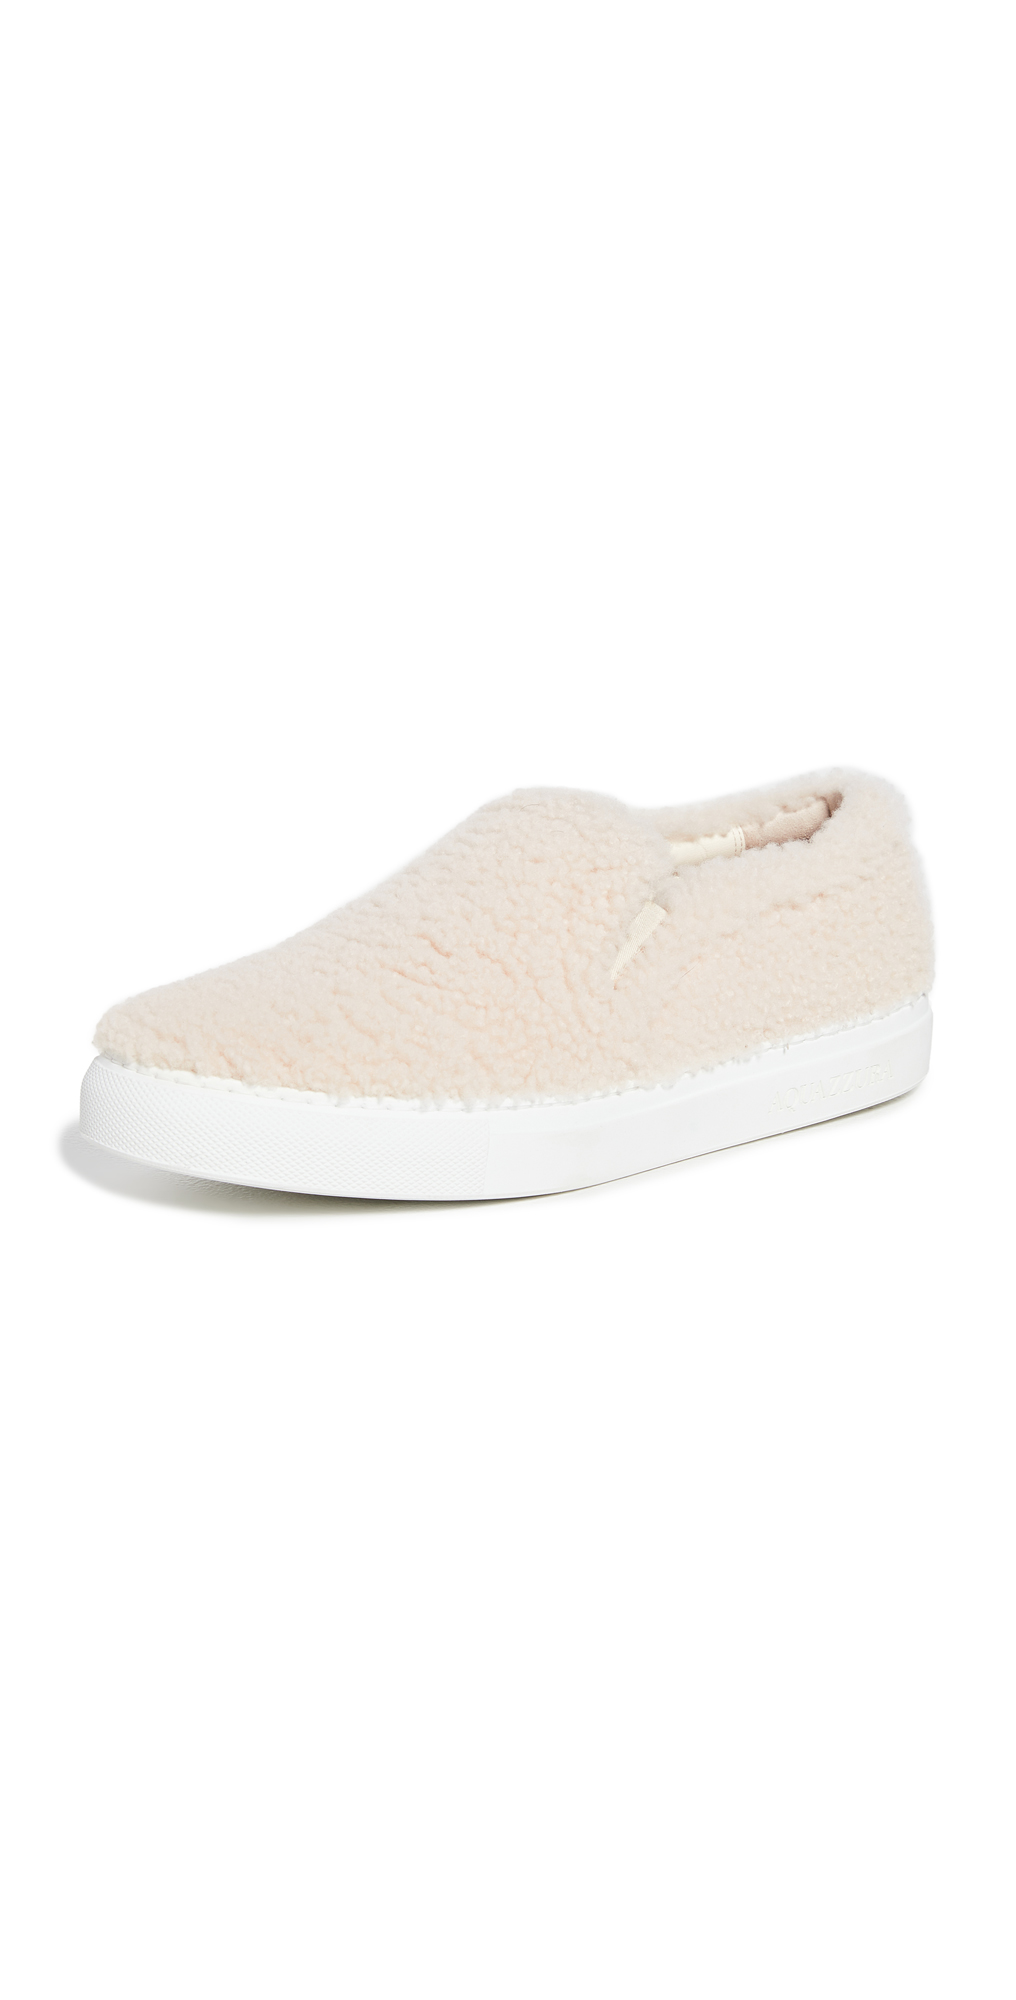 Aquazzura Relax Slip On Sneakers